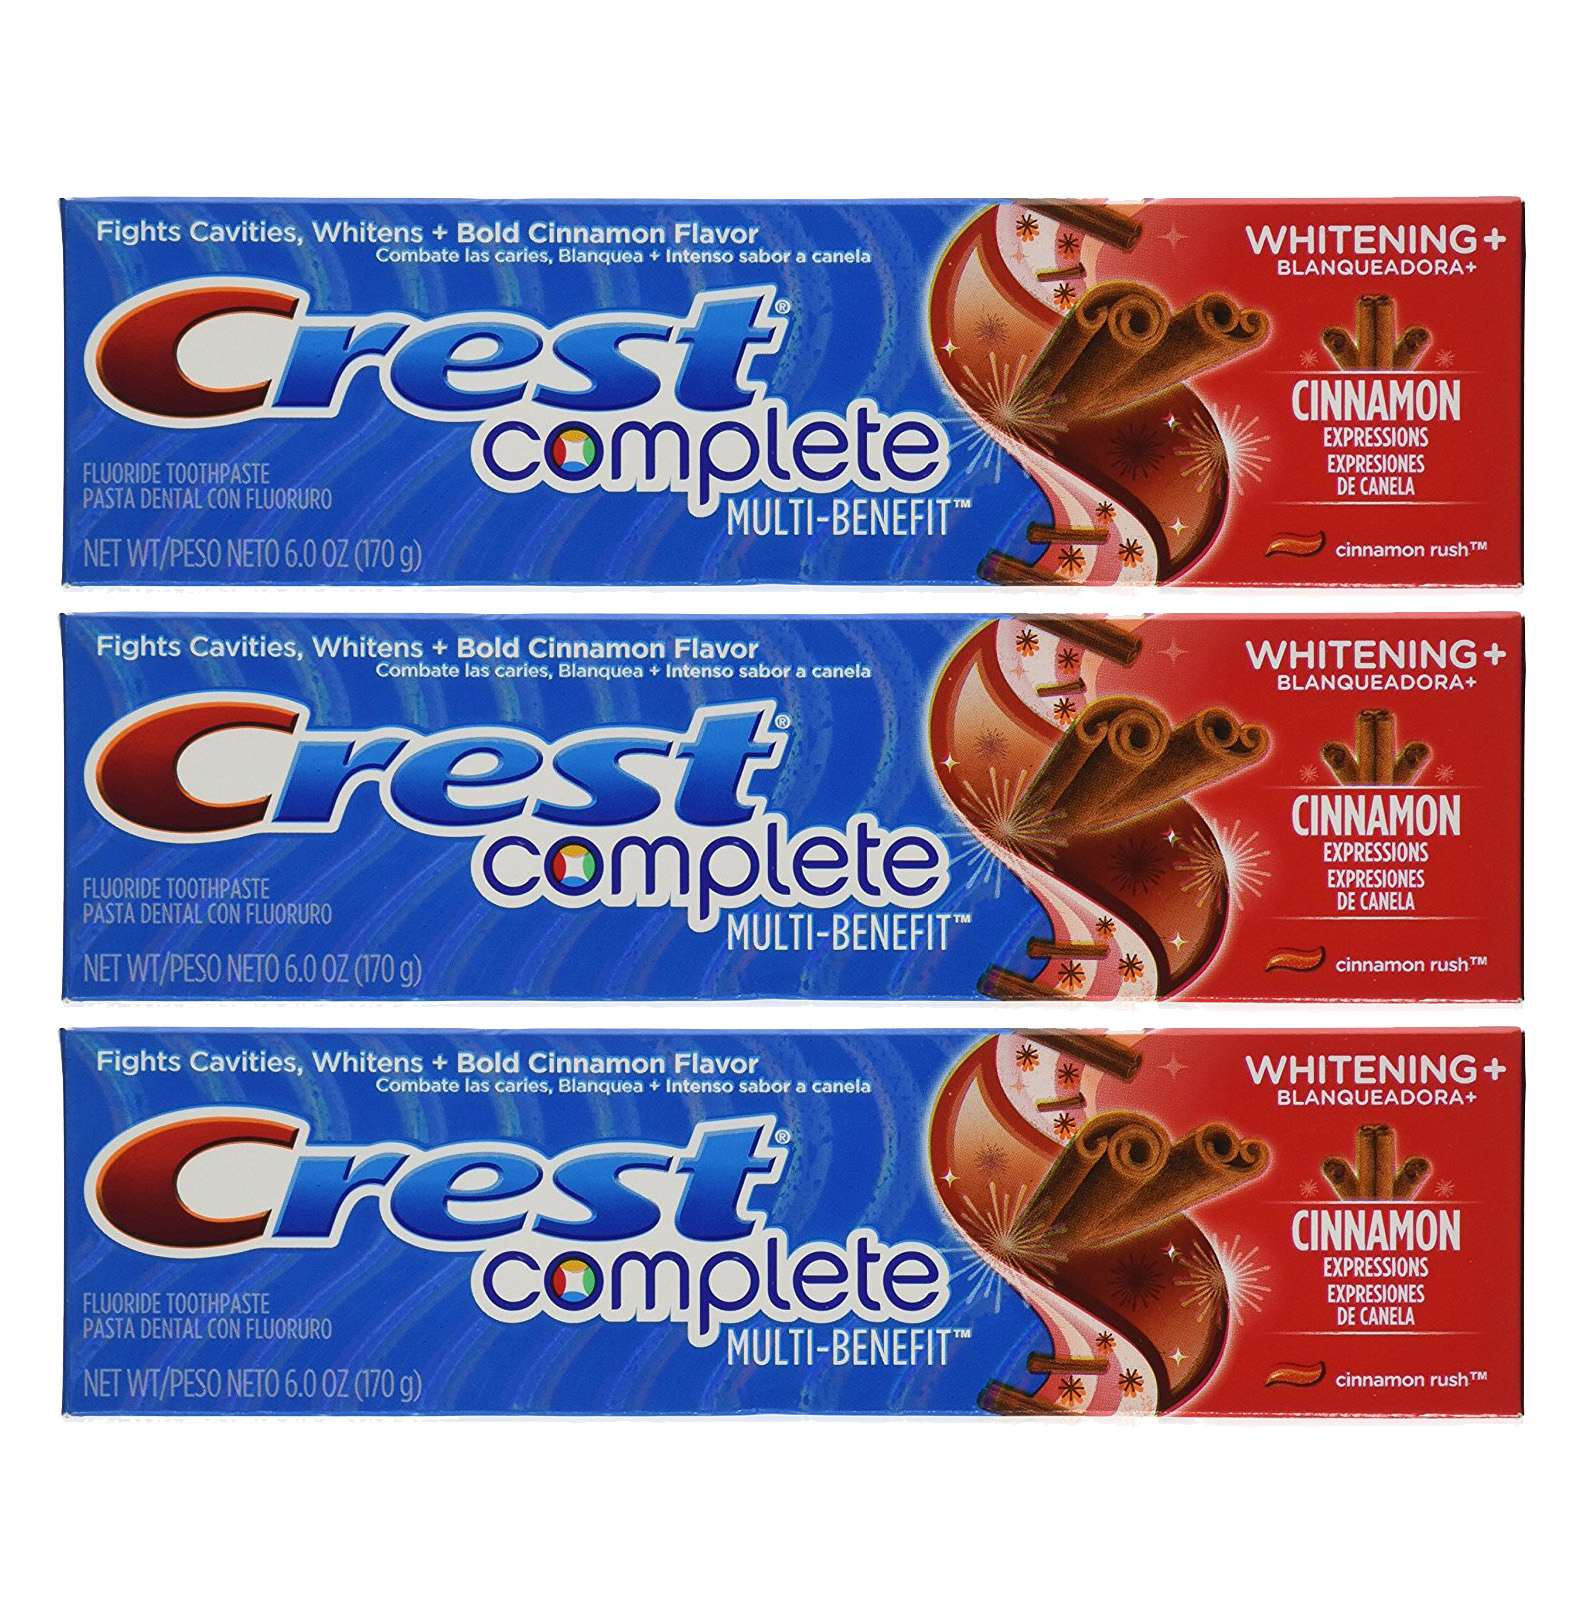 Crest Complete Multi-Benefit Whitening Cinnamon Rush Toothpaste 6 oz, 3 Pack